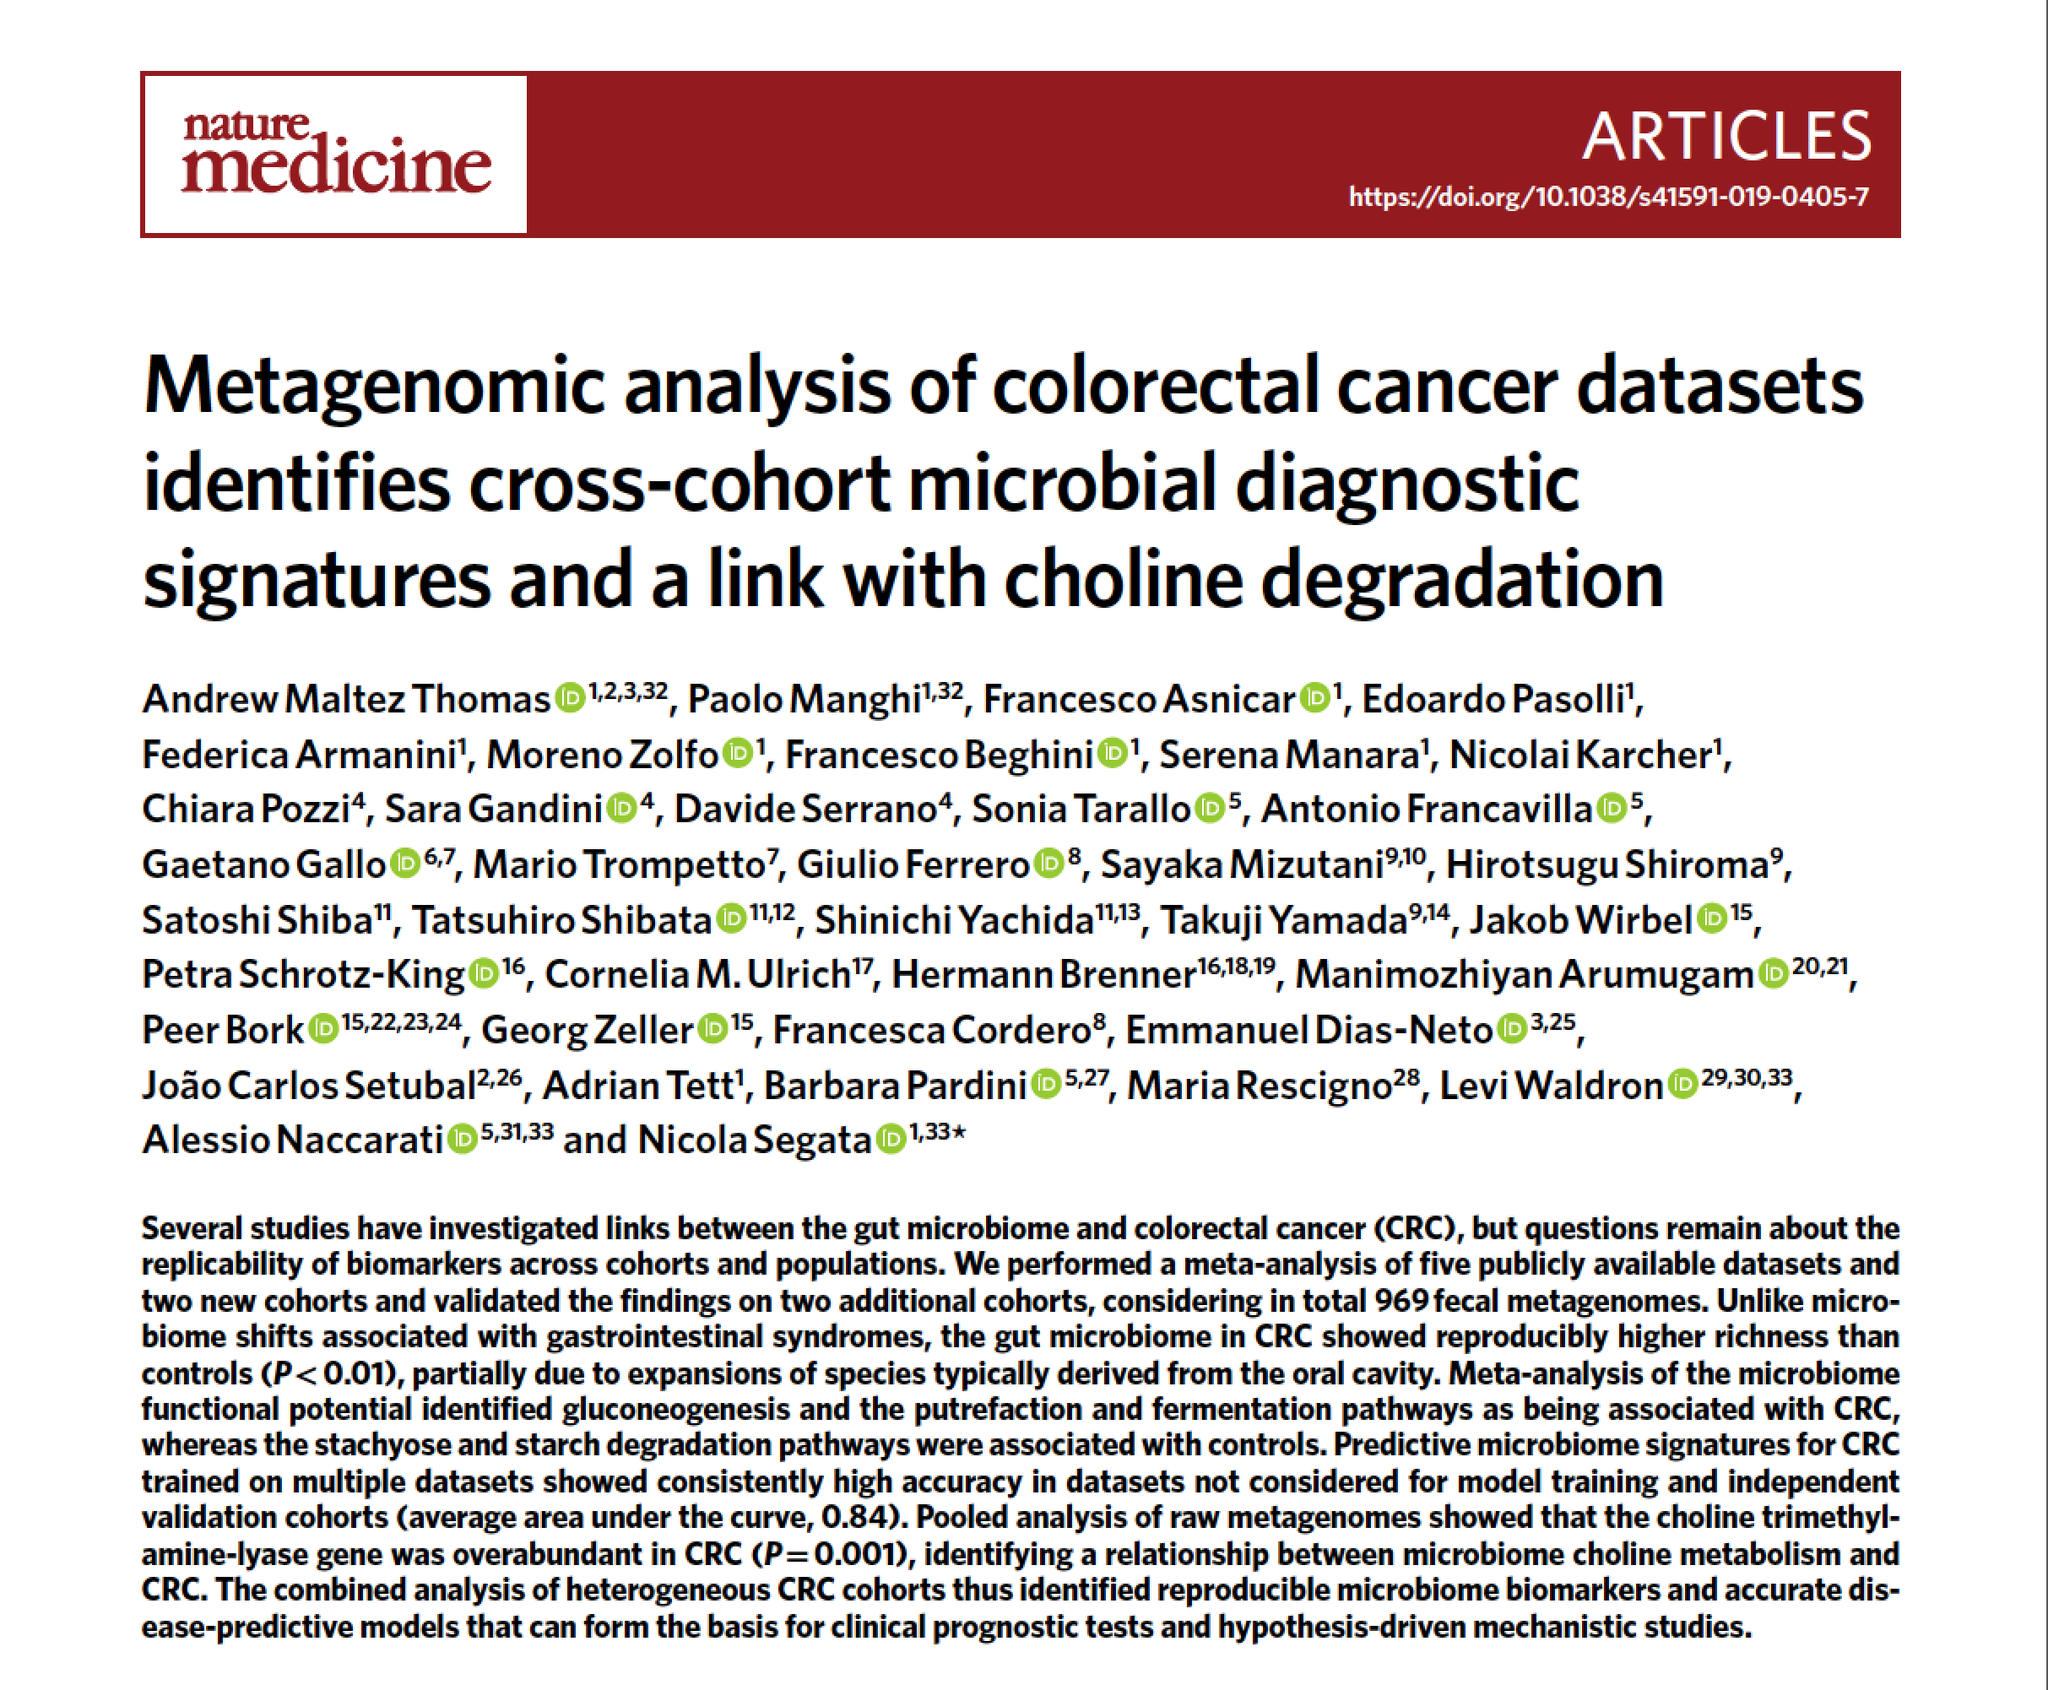 Eric Topol On Twitter It S Not Enough To Characterize The Gut Microbiome By Bacterial Content How Metagenomics Tracks With Colon Cancer Specific Signatures Https T Co Yih1teyevg Https T Co Jqricffhgz Naturemedicine Https T Co Vfdiuxjqvo